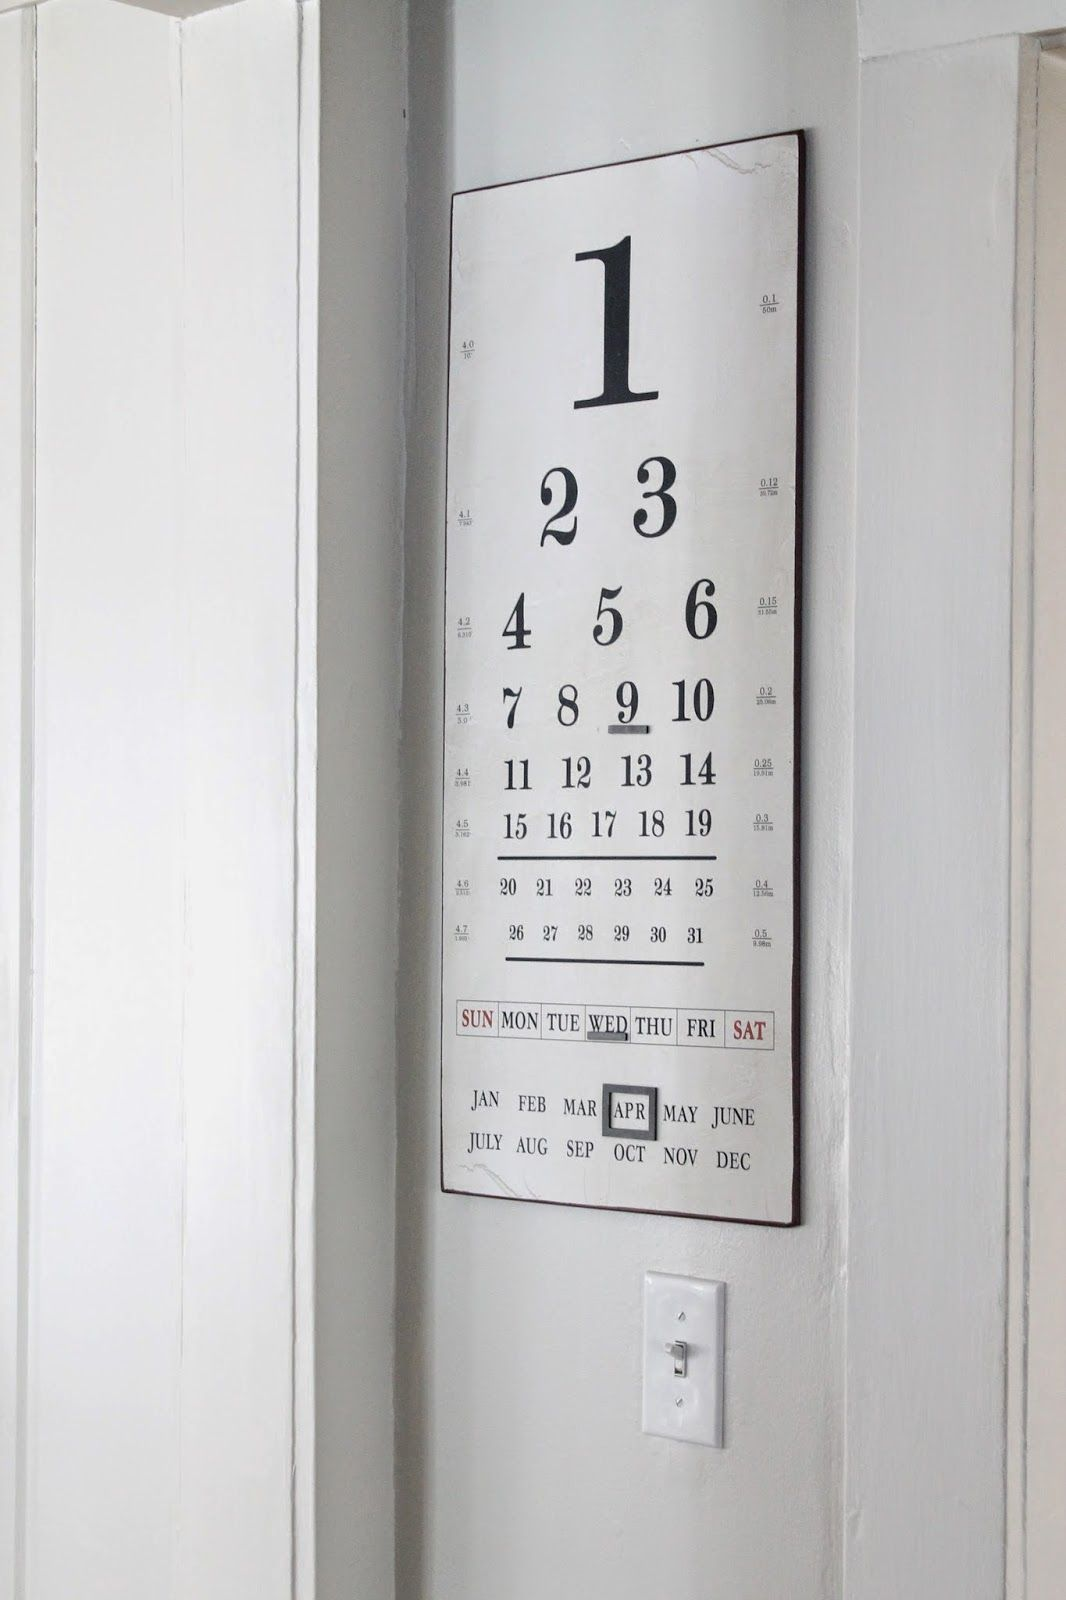 The picket fence projects set your eyes on this diy pinterest vintage eye chart metal calendar home organization gallery wall fixer upper style office decor home office cottage shabby chic industrial nvjuhfo Image collections